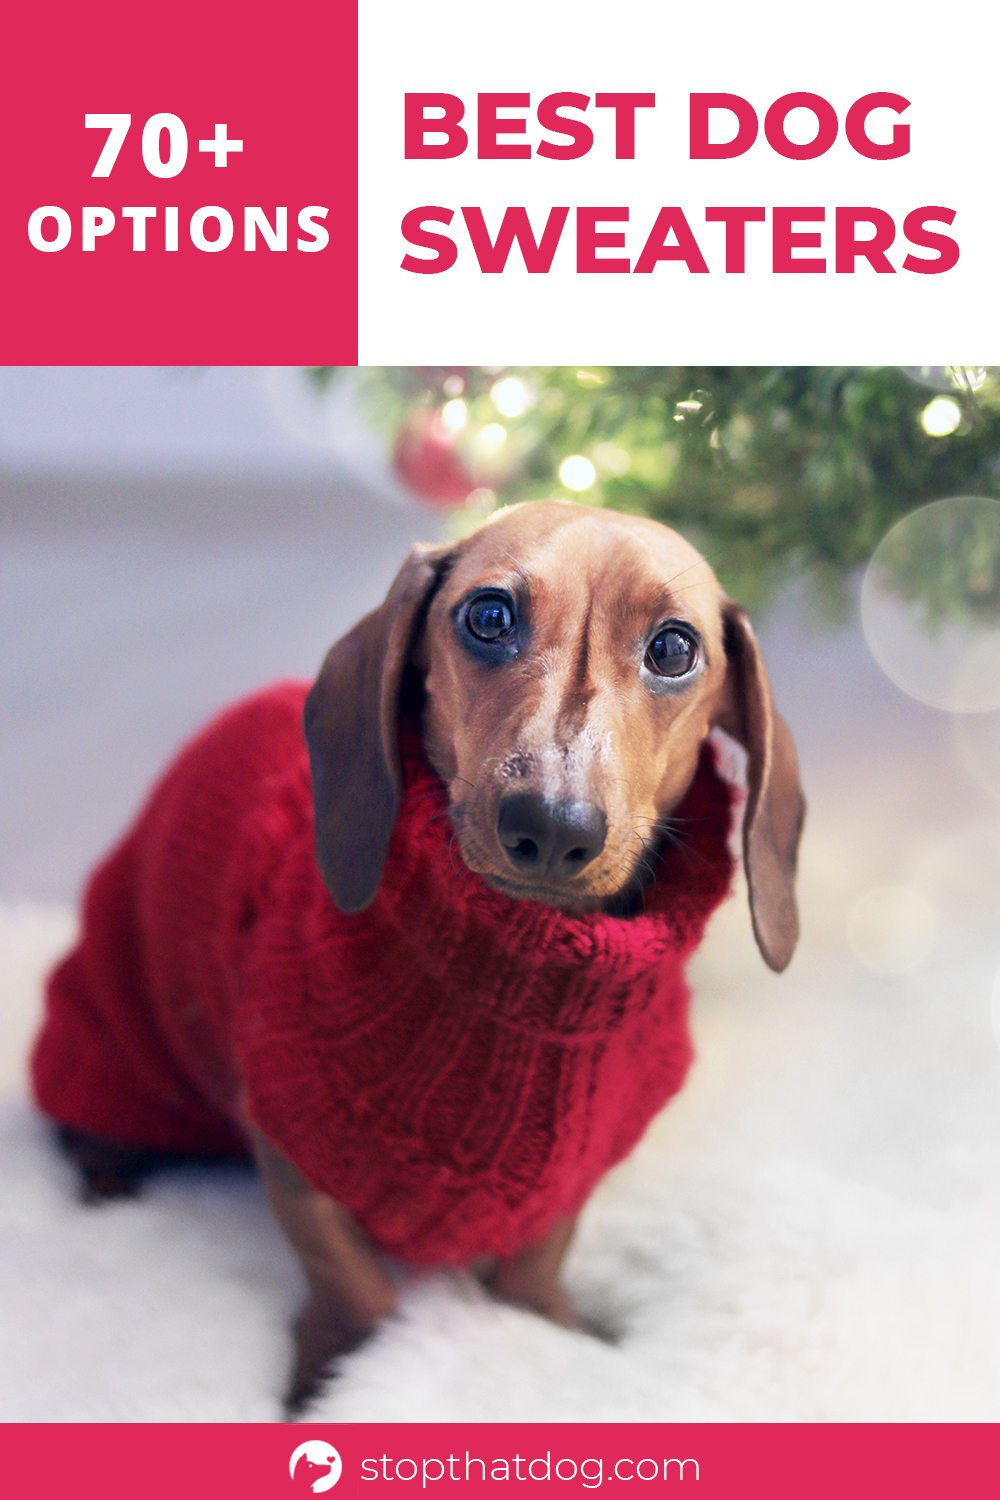 Want to buy the dog sweater for your furry friend? If so, our guide highlights over 70 of the best options on the market.